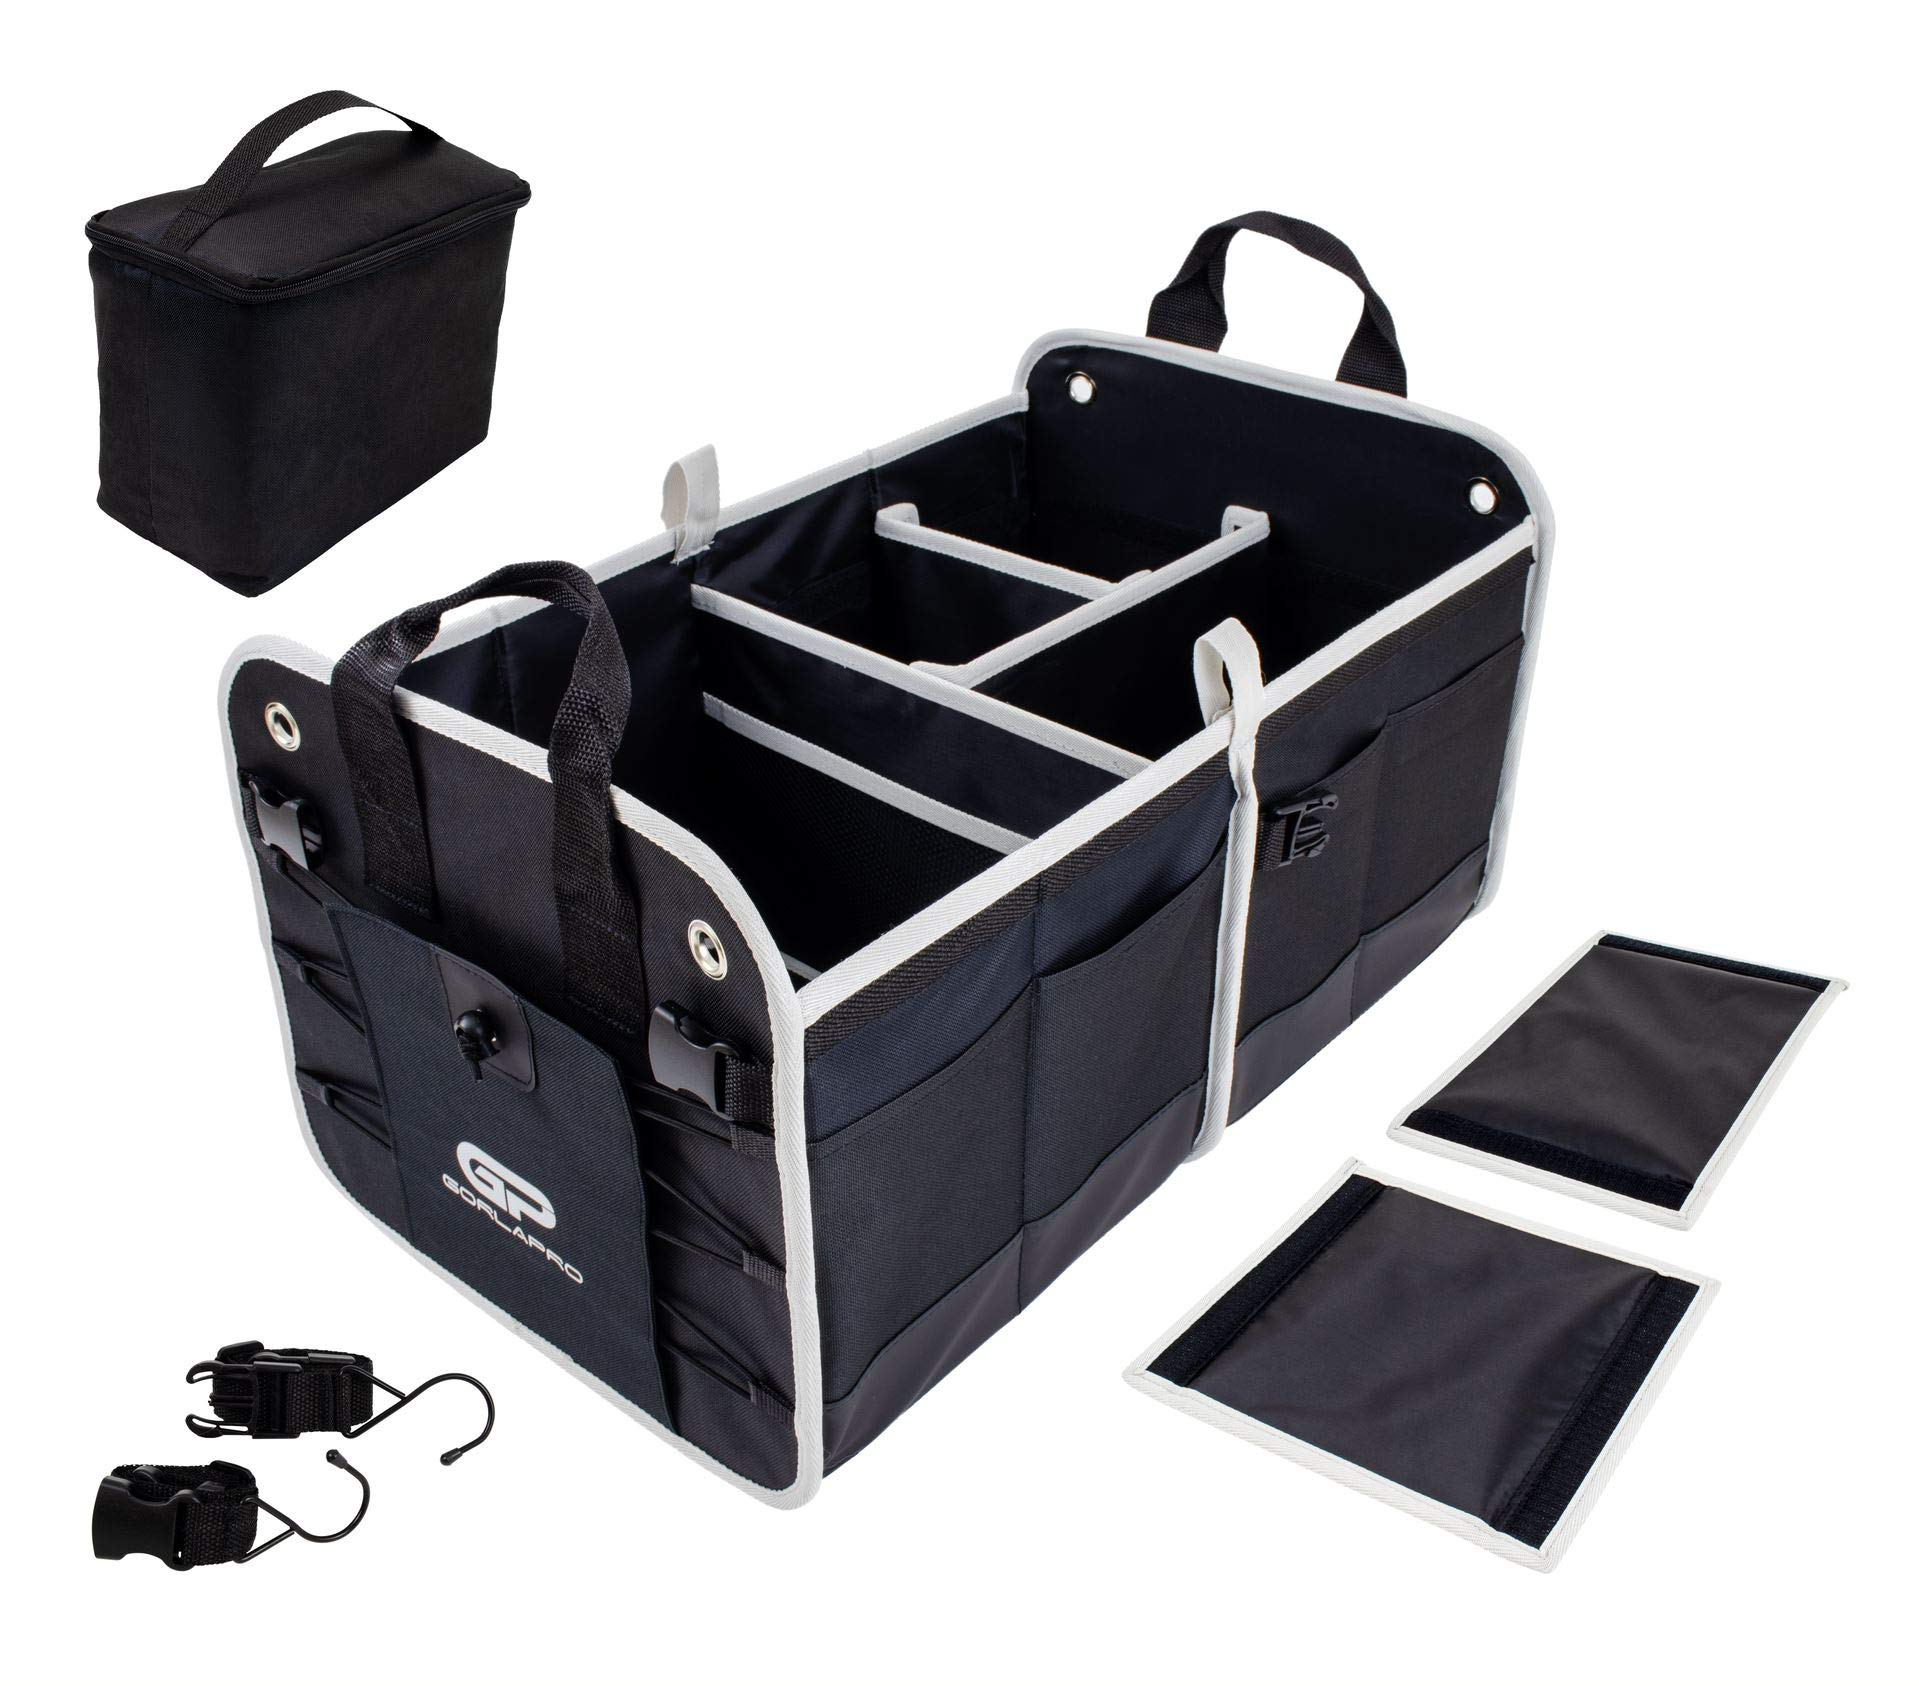 Collapsible Multi-compartments Cargo Storage Anti-Slip Handles Goplus Car Trunk Organizer Easily Expandable Automotive Storage Box Bin Cubes for SUV Car Truck Auto Vehicle with Securing Straps